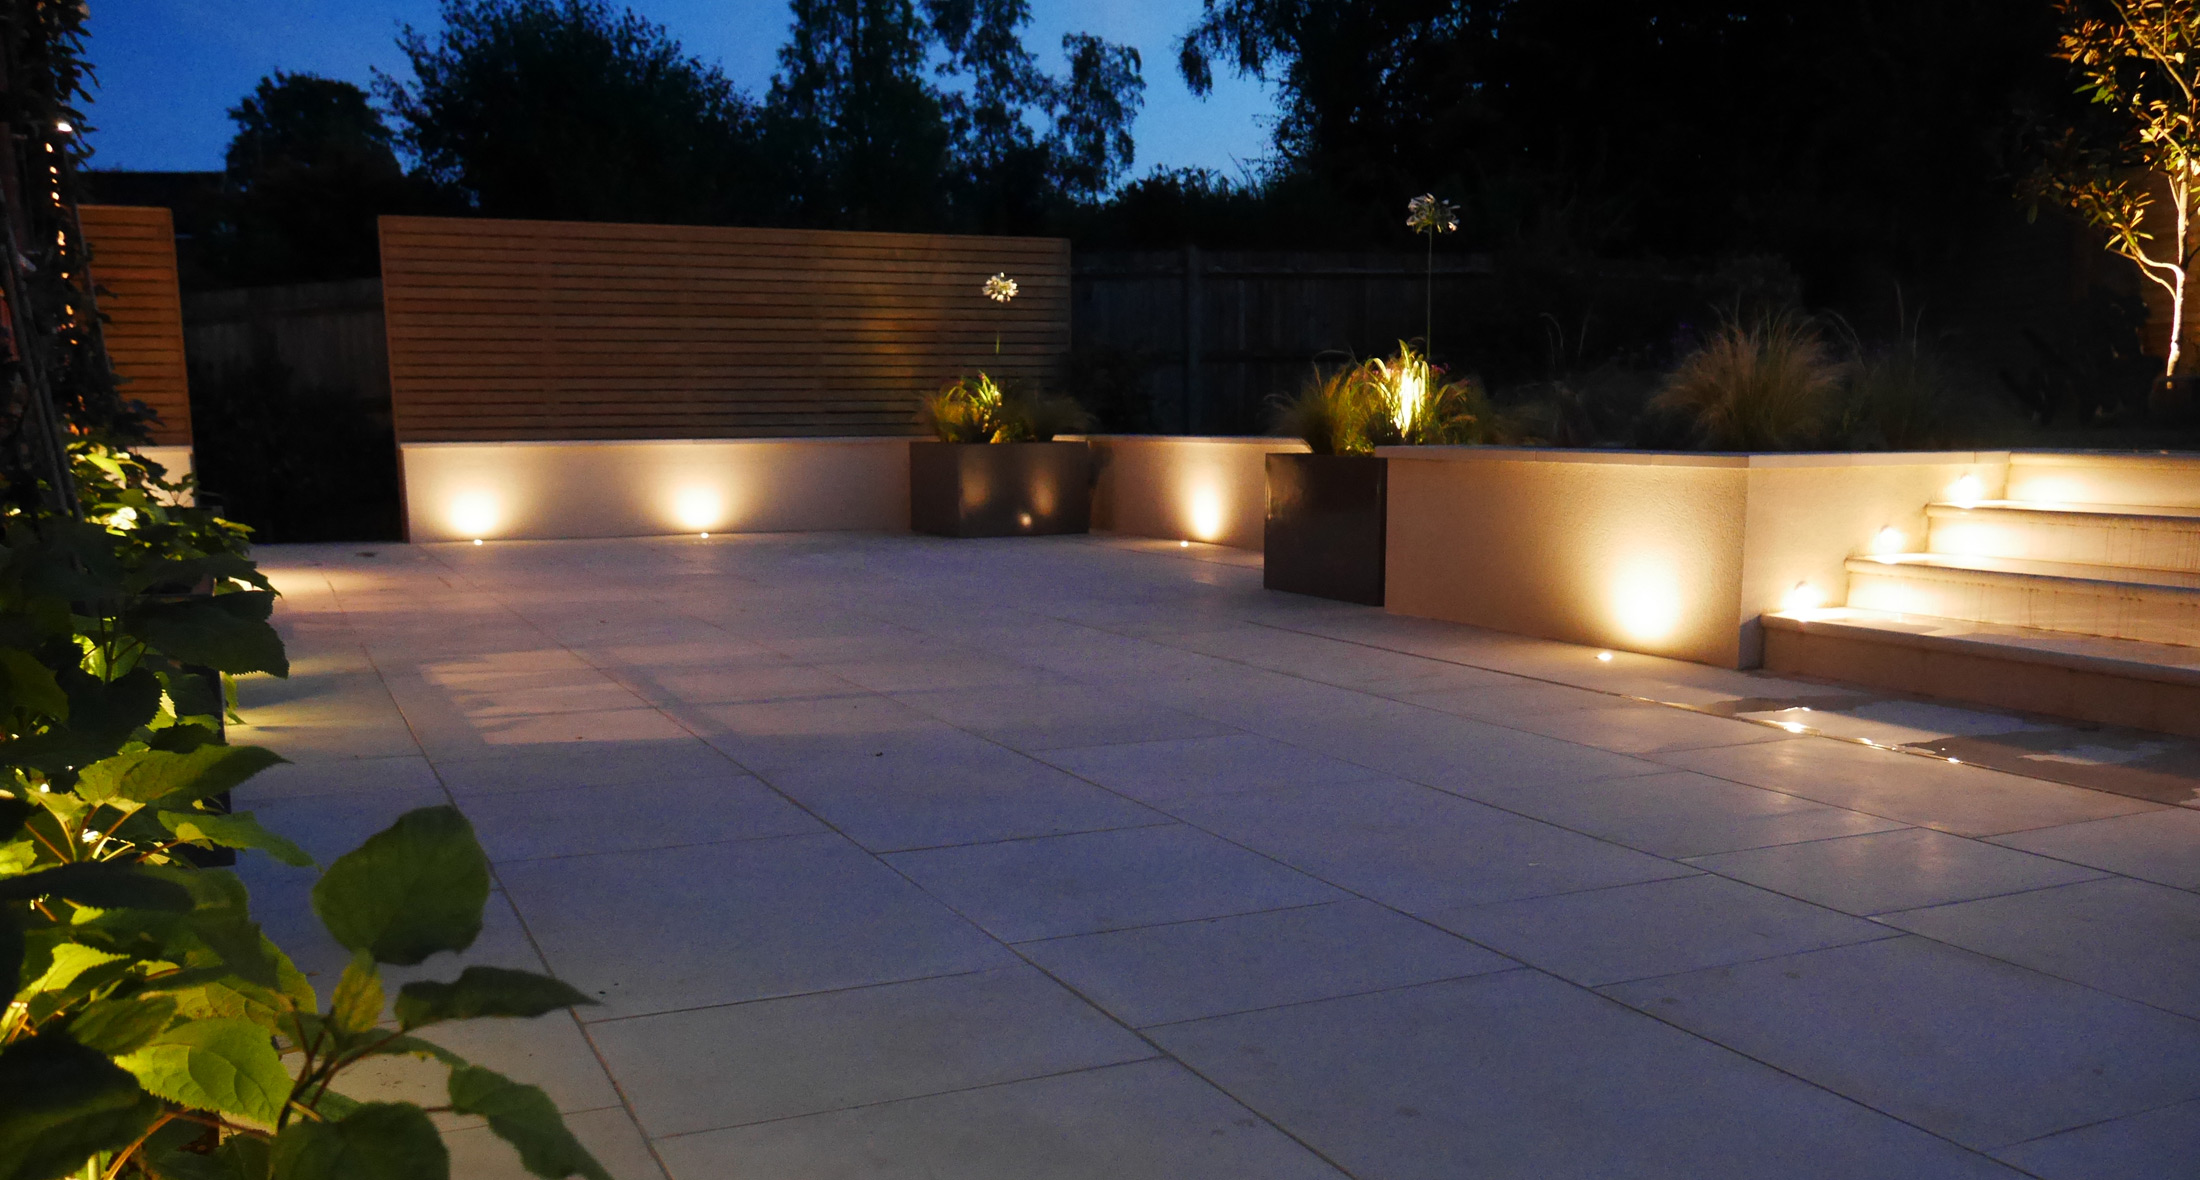 Slate Grey garden lighting downlighters on a wooden clad wall in a newly designed and landscaped garden in Tunbridge Wells, Kent